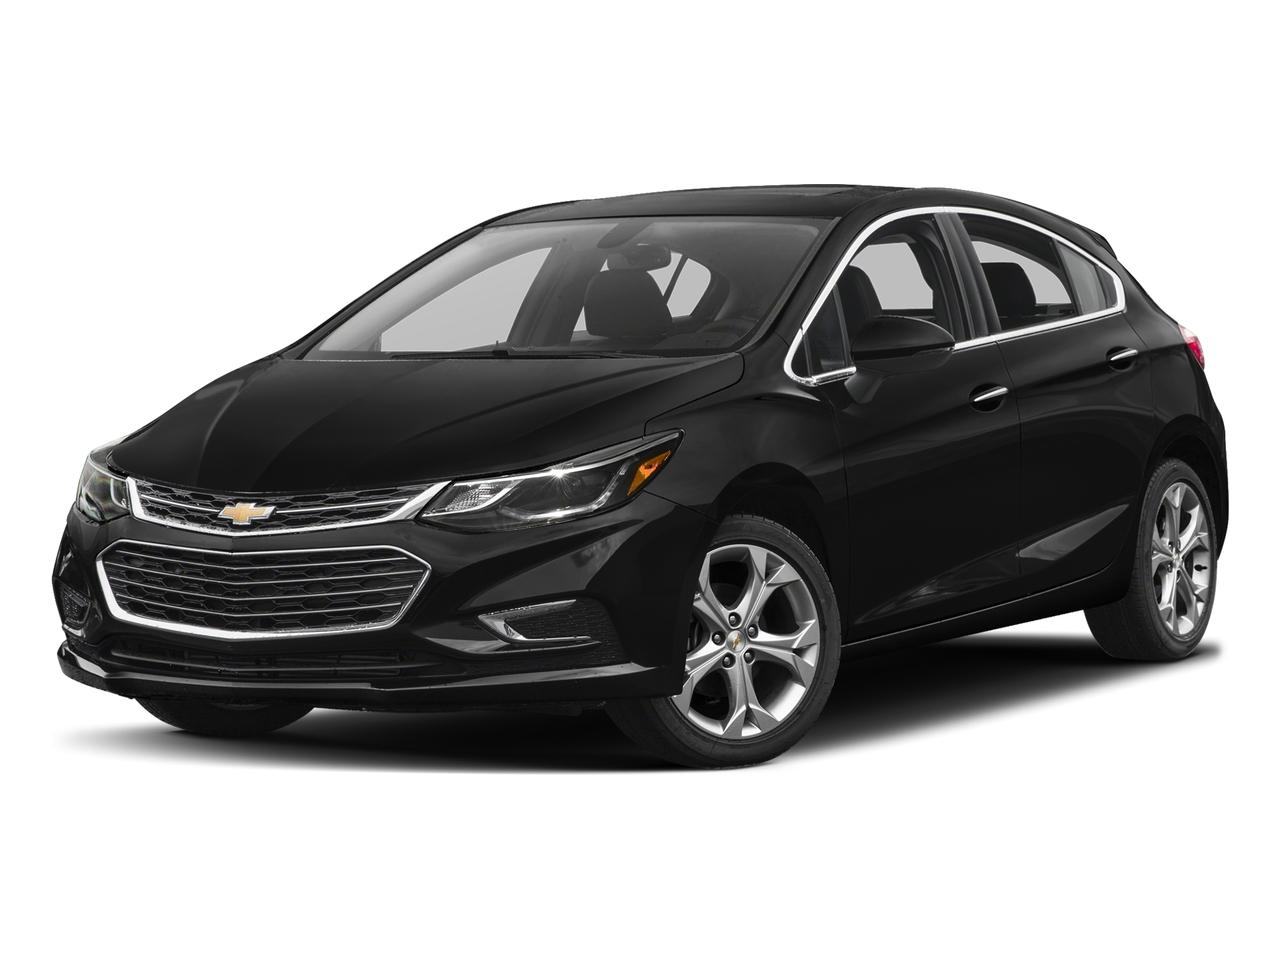 2017 Chevrolet Cruze Vehicle Photo in Rockville, MD 20852